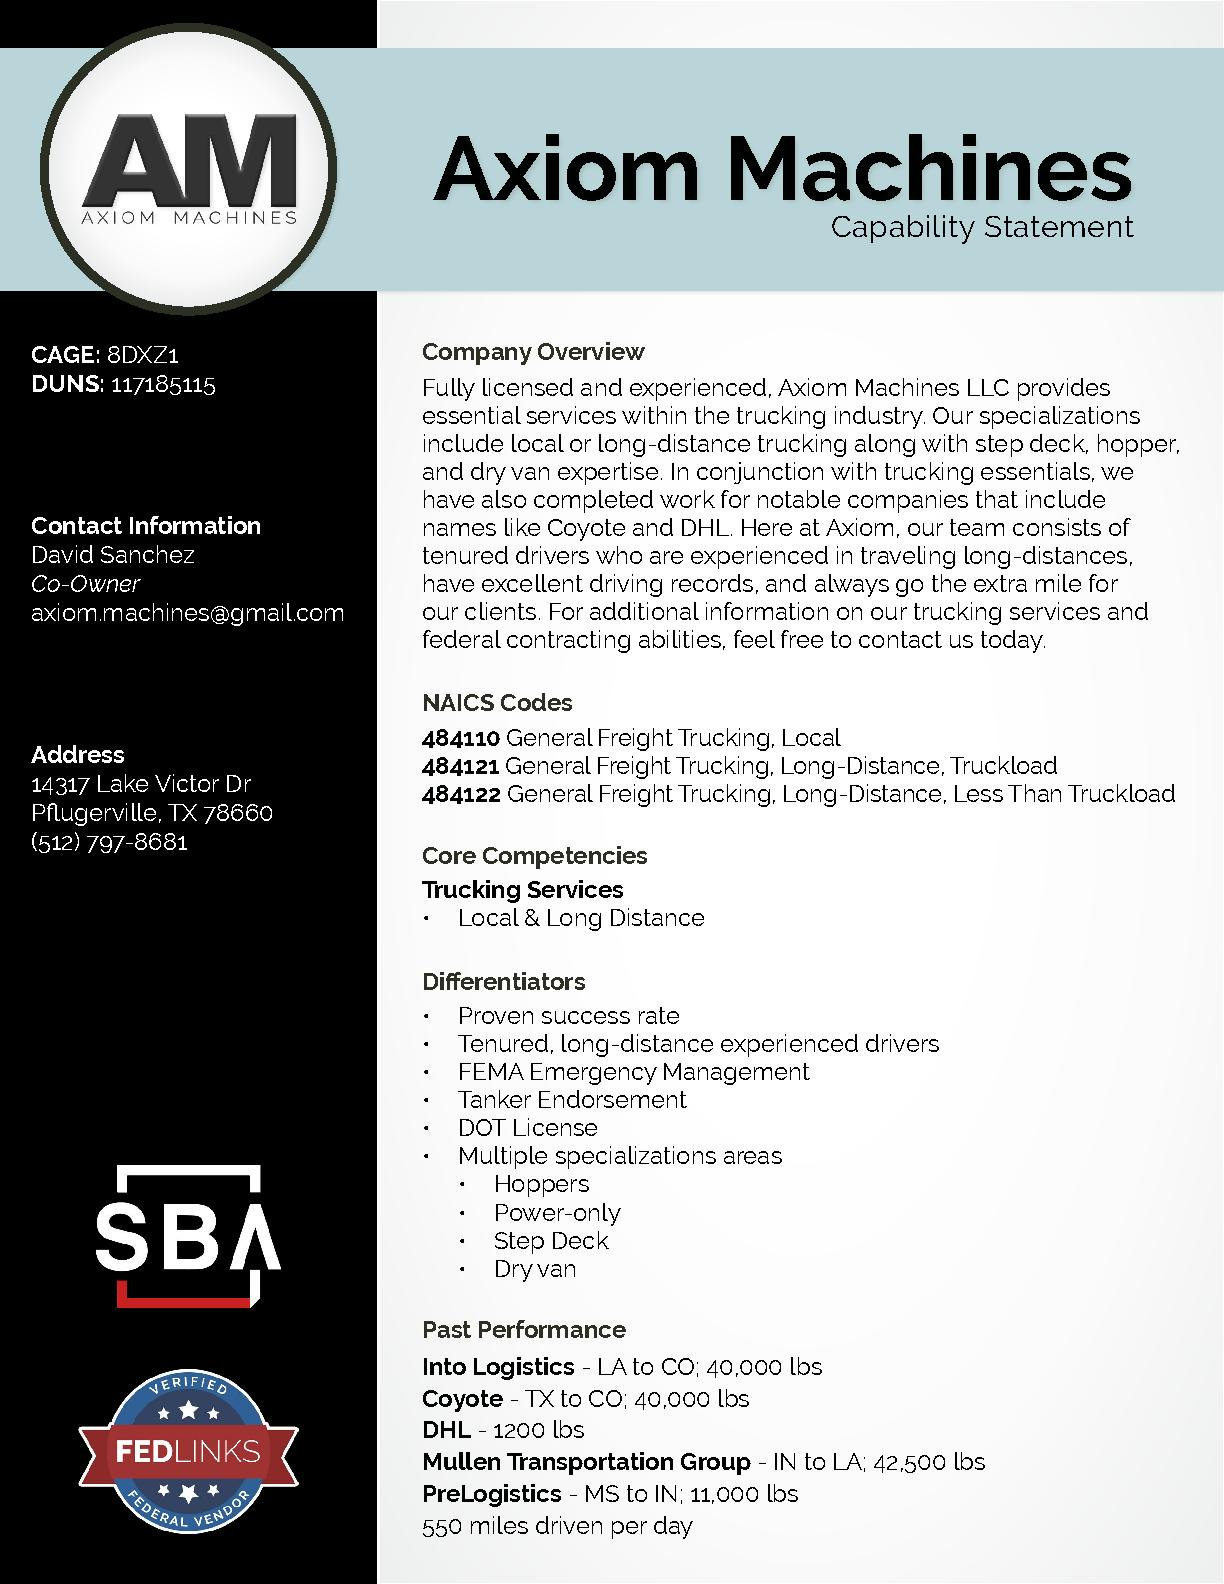 Axiom machines llc capability statement